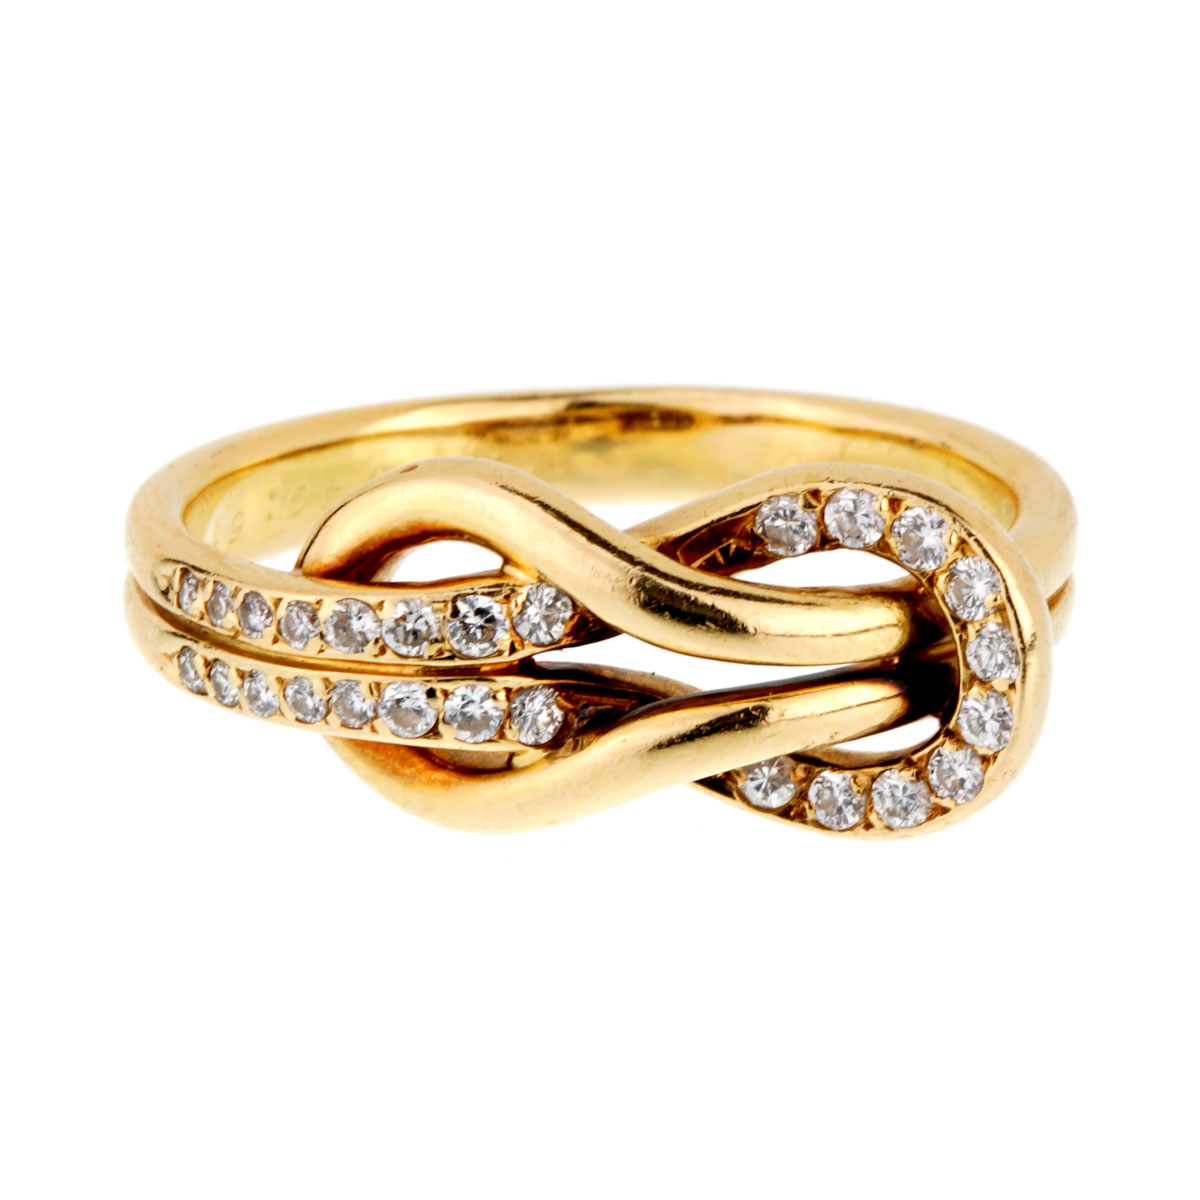 Cartier Love Knot Diamond Gold Ring